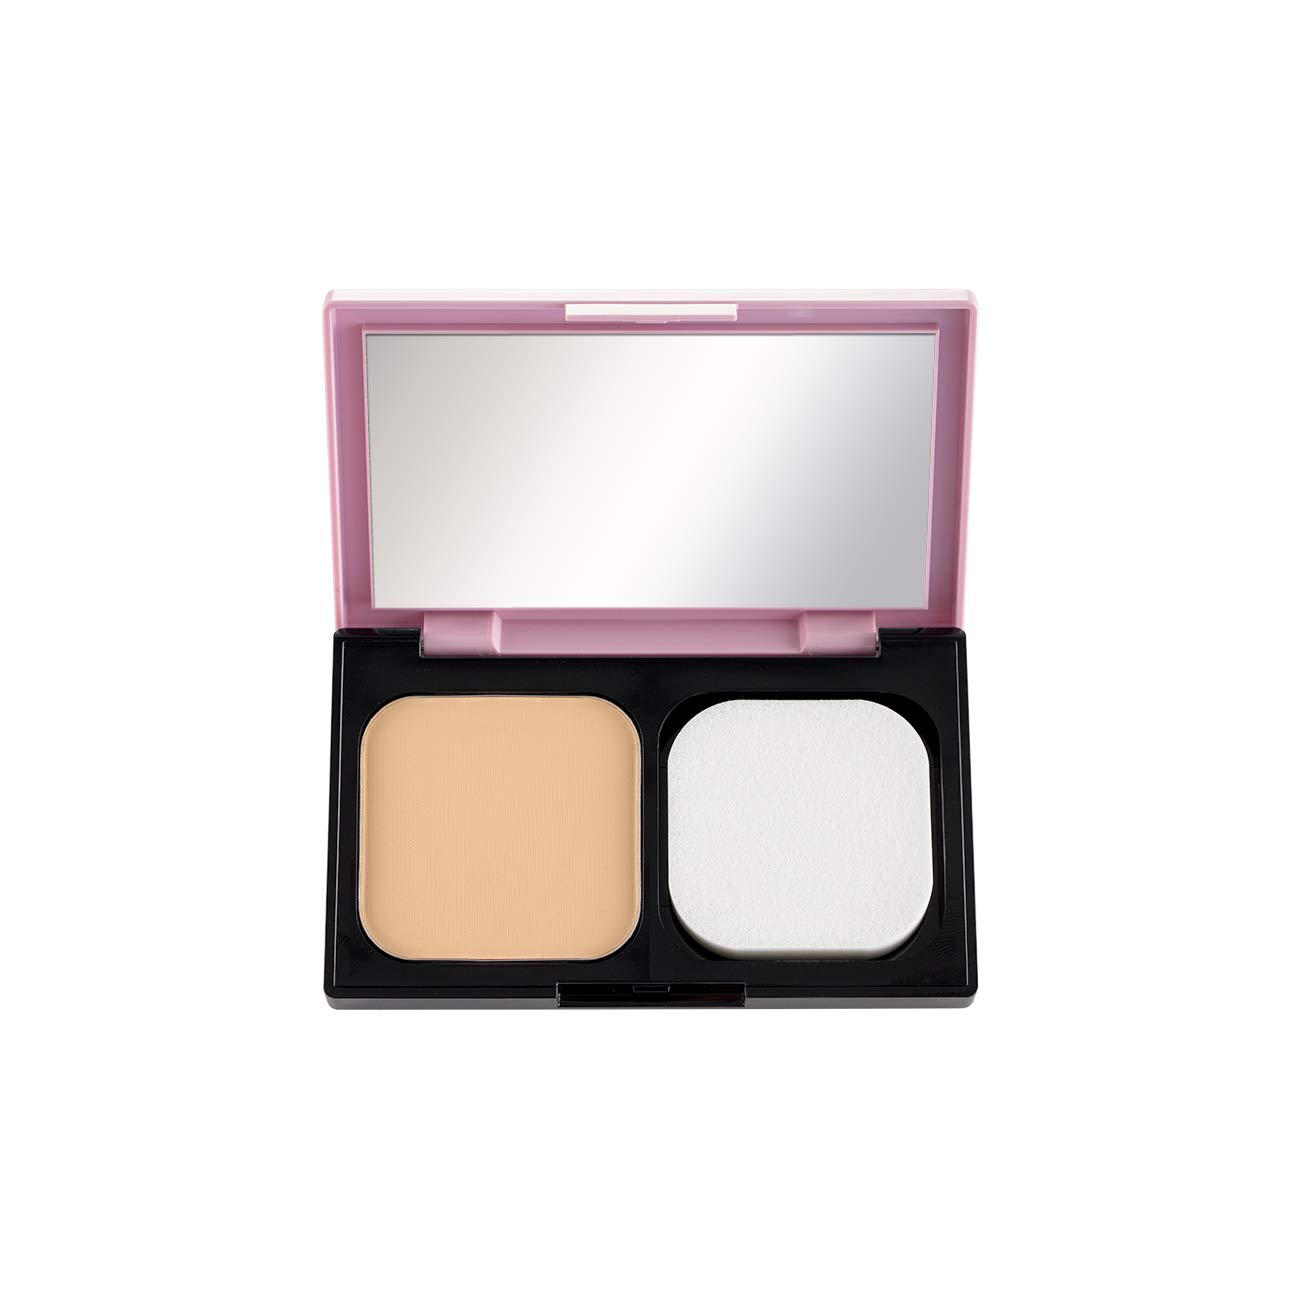 Buy Maybelline New York Compact Sand Beige 9 G Online At Low Two Cake Bedak 2 Pcs Prices In India